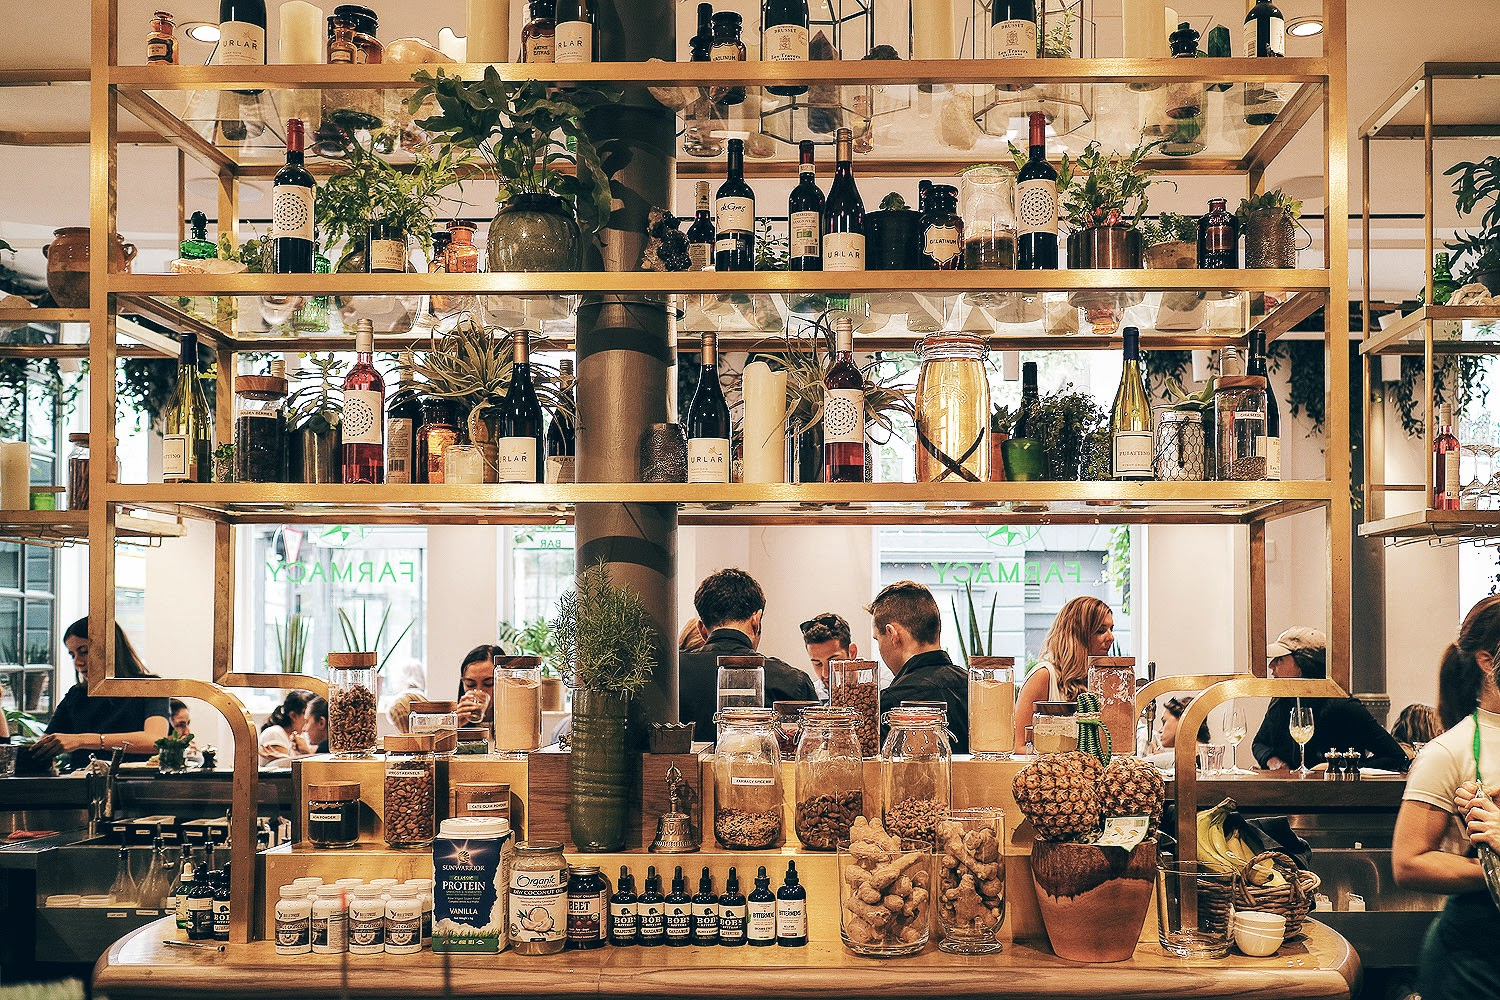 Farmacy London reimagines healthy eating with a glorious space for breakfast or brunch in Notting Hill